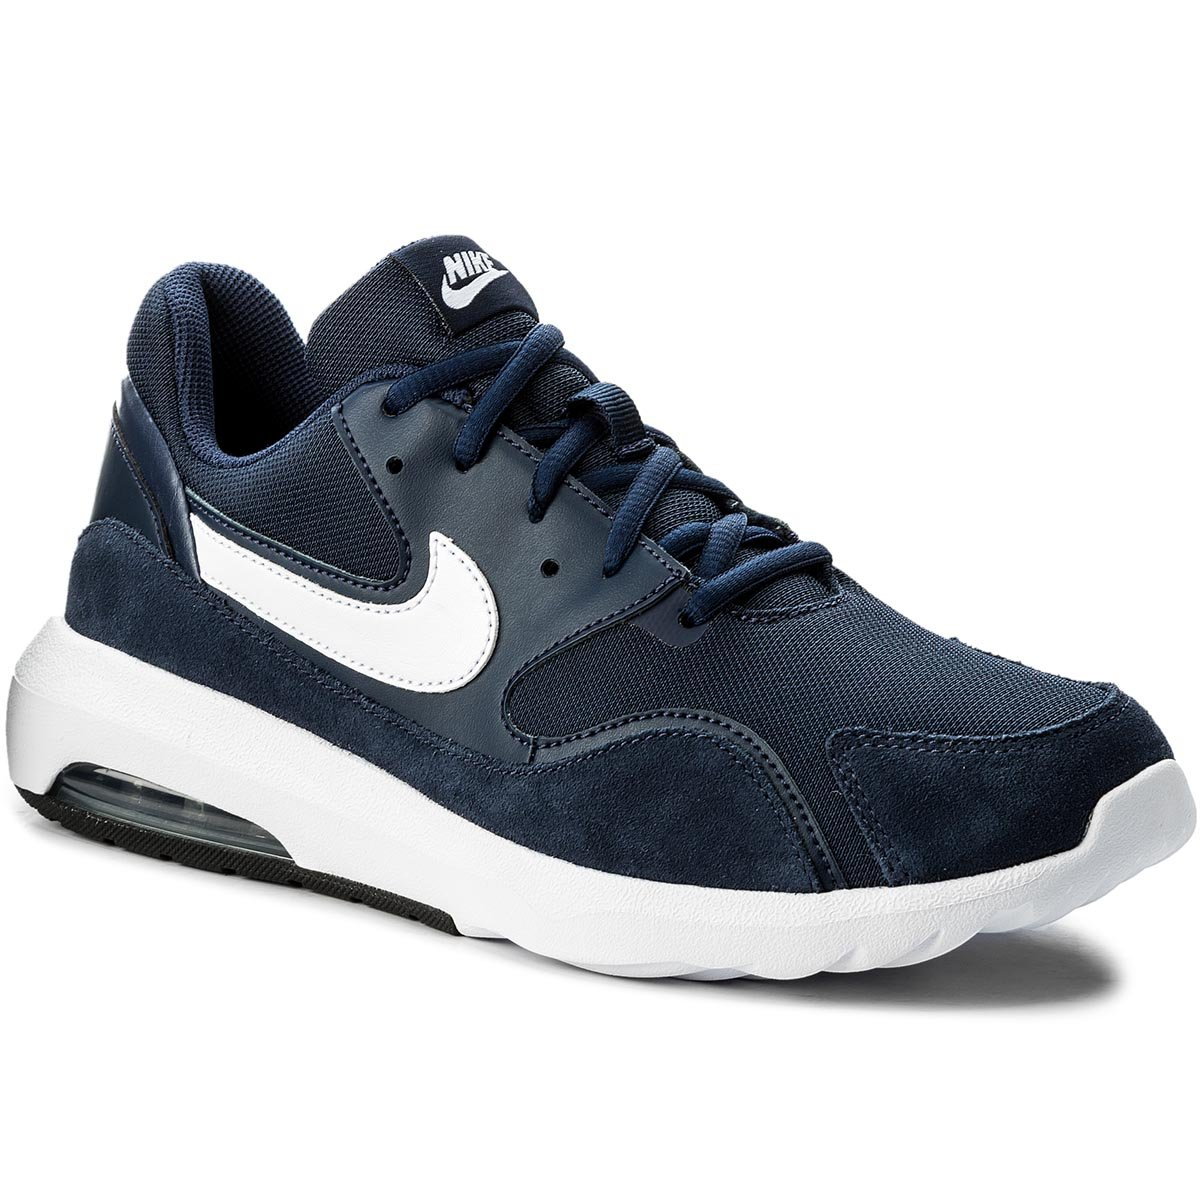 Buty NIKE - Air Max Nostalgic 916781 400 Midnight Navy/White/Black